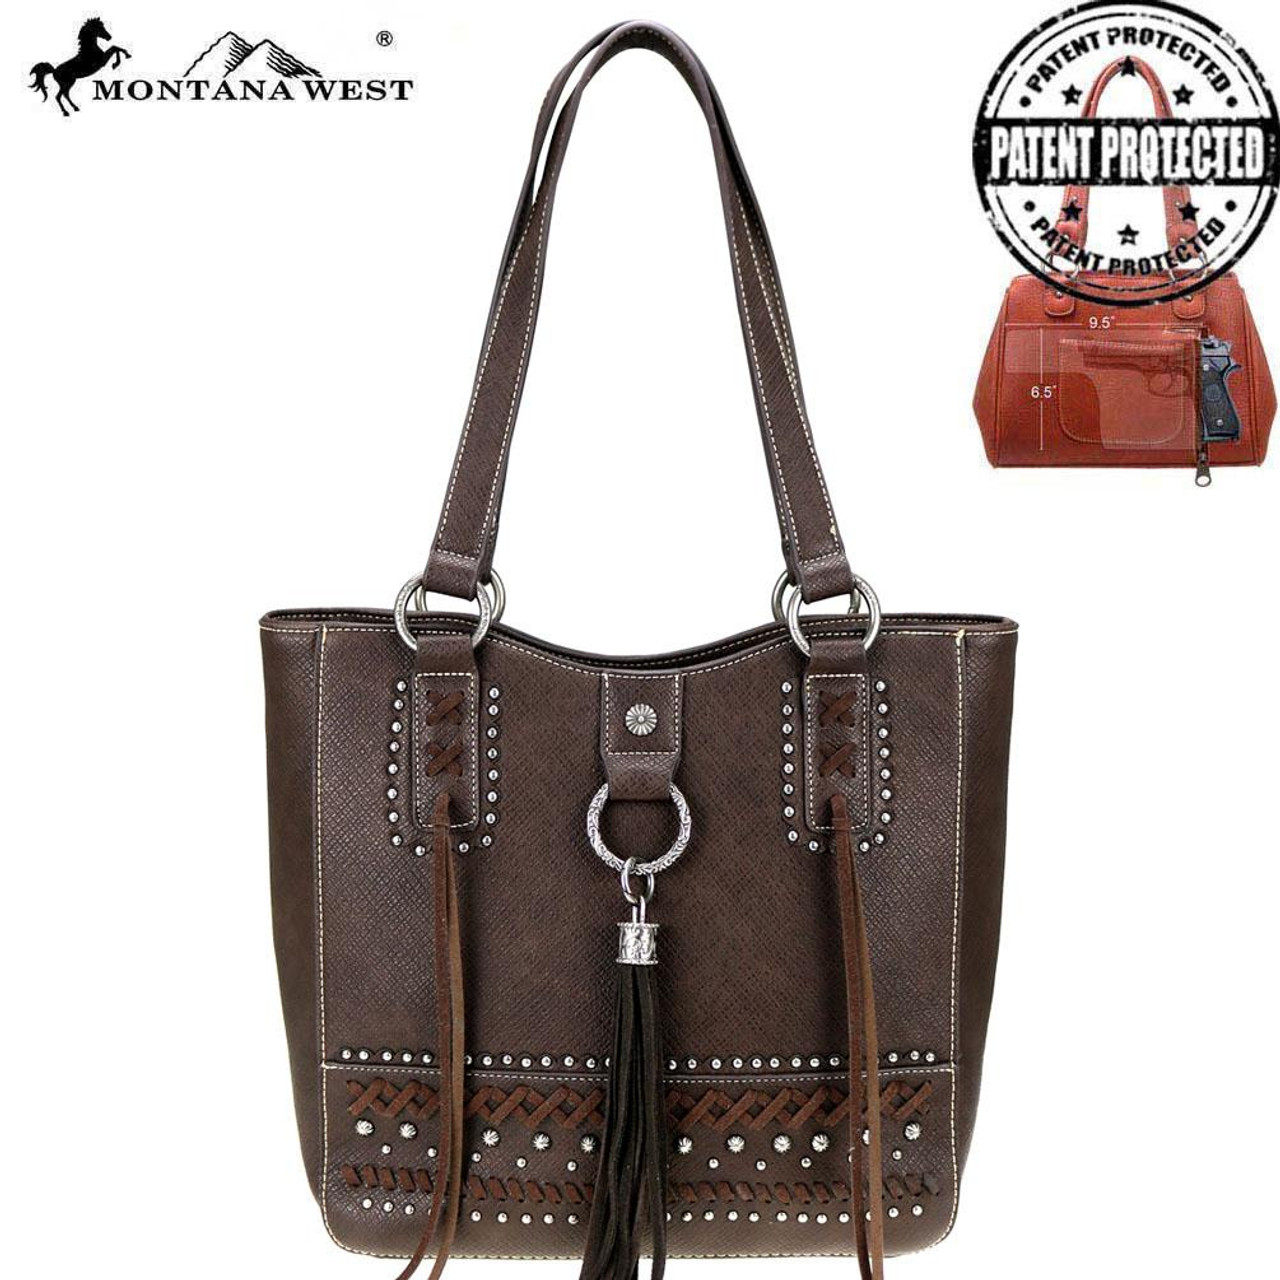 Montana West Fringe Collection Concealed Carry Tote - Coffee - Impact Guns 4d36dc1148c14